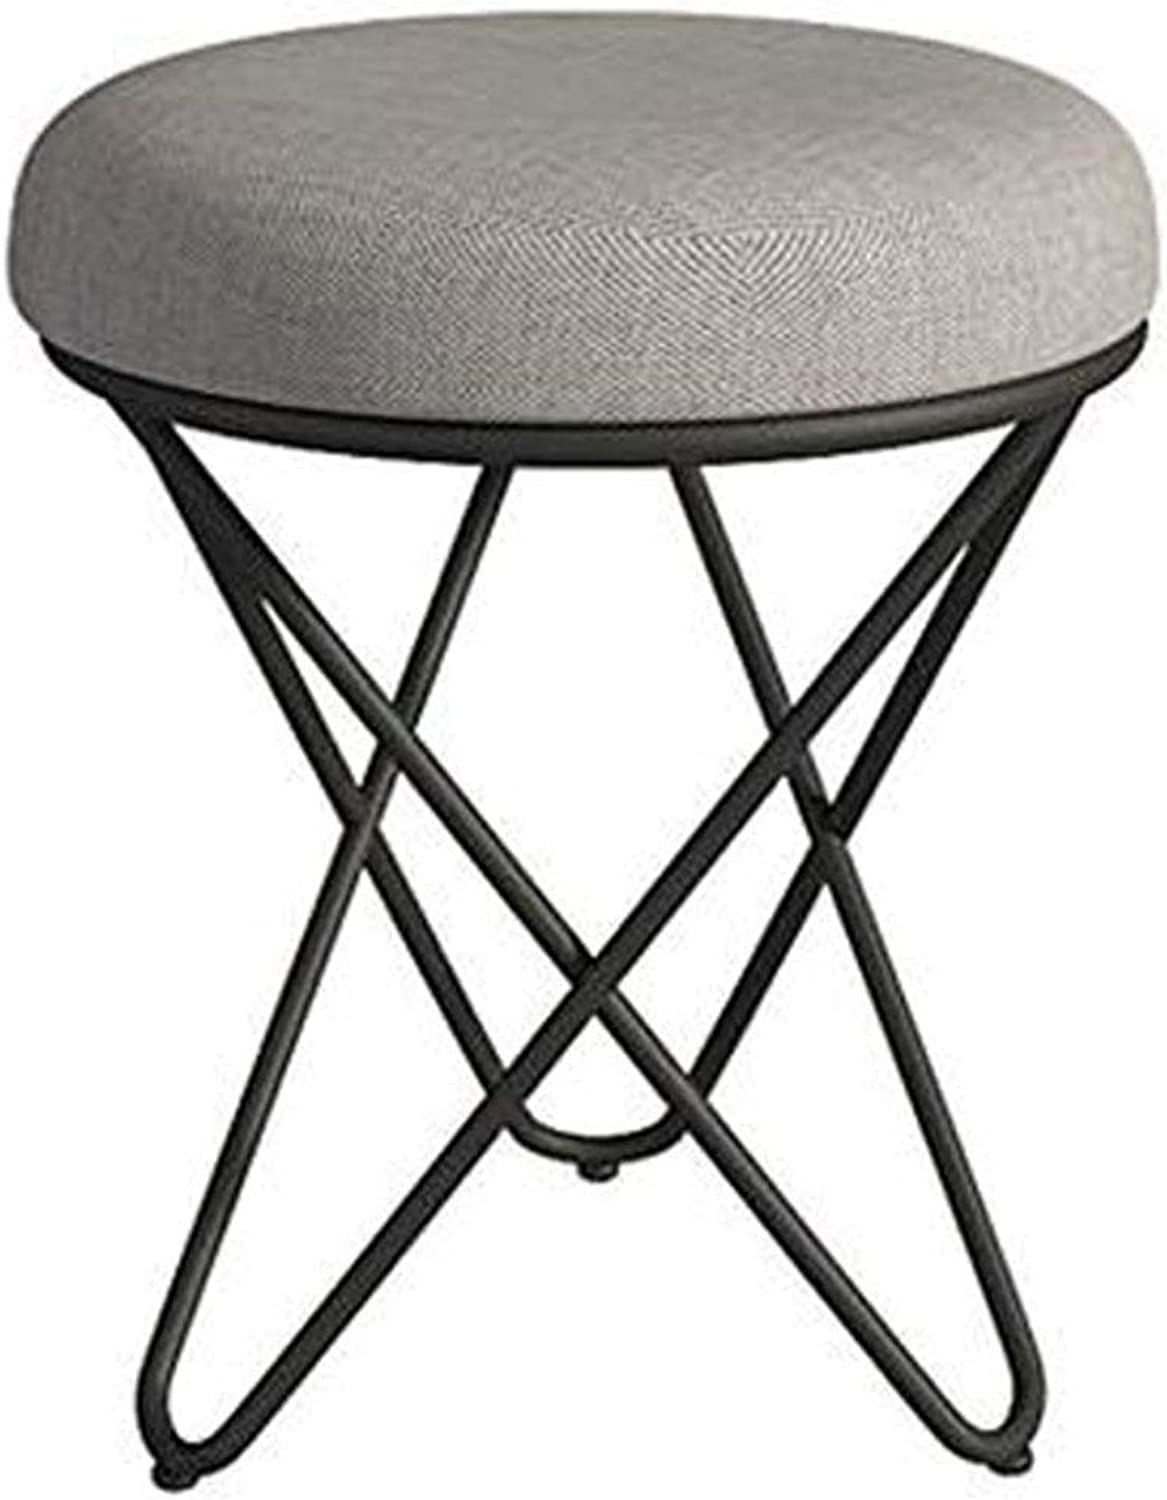 Makeup Chair Bedroom Creative Round Chair Bedroom Dressing Stool Nordic Dressing Table Stool Modern Simple Makeup Chair Nail Makeup Stool Makeup Stool Dress Stool,B